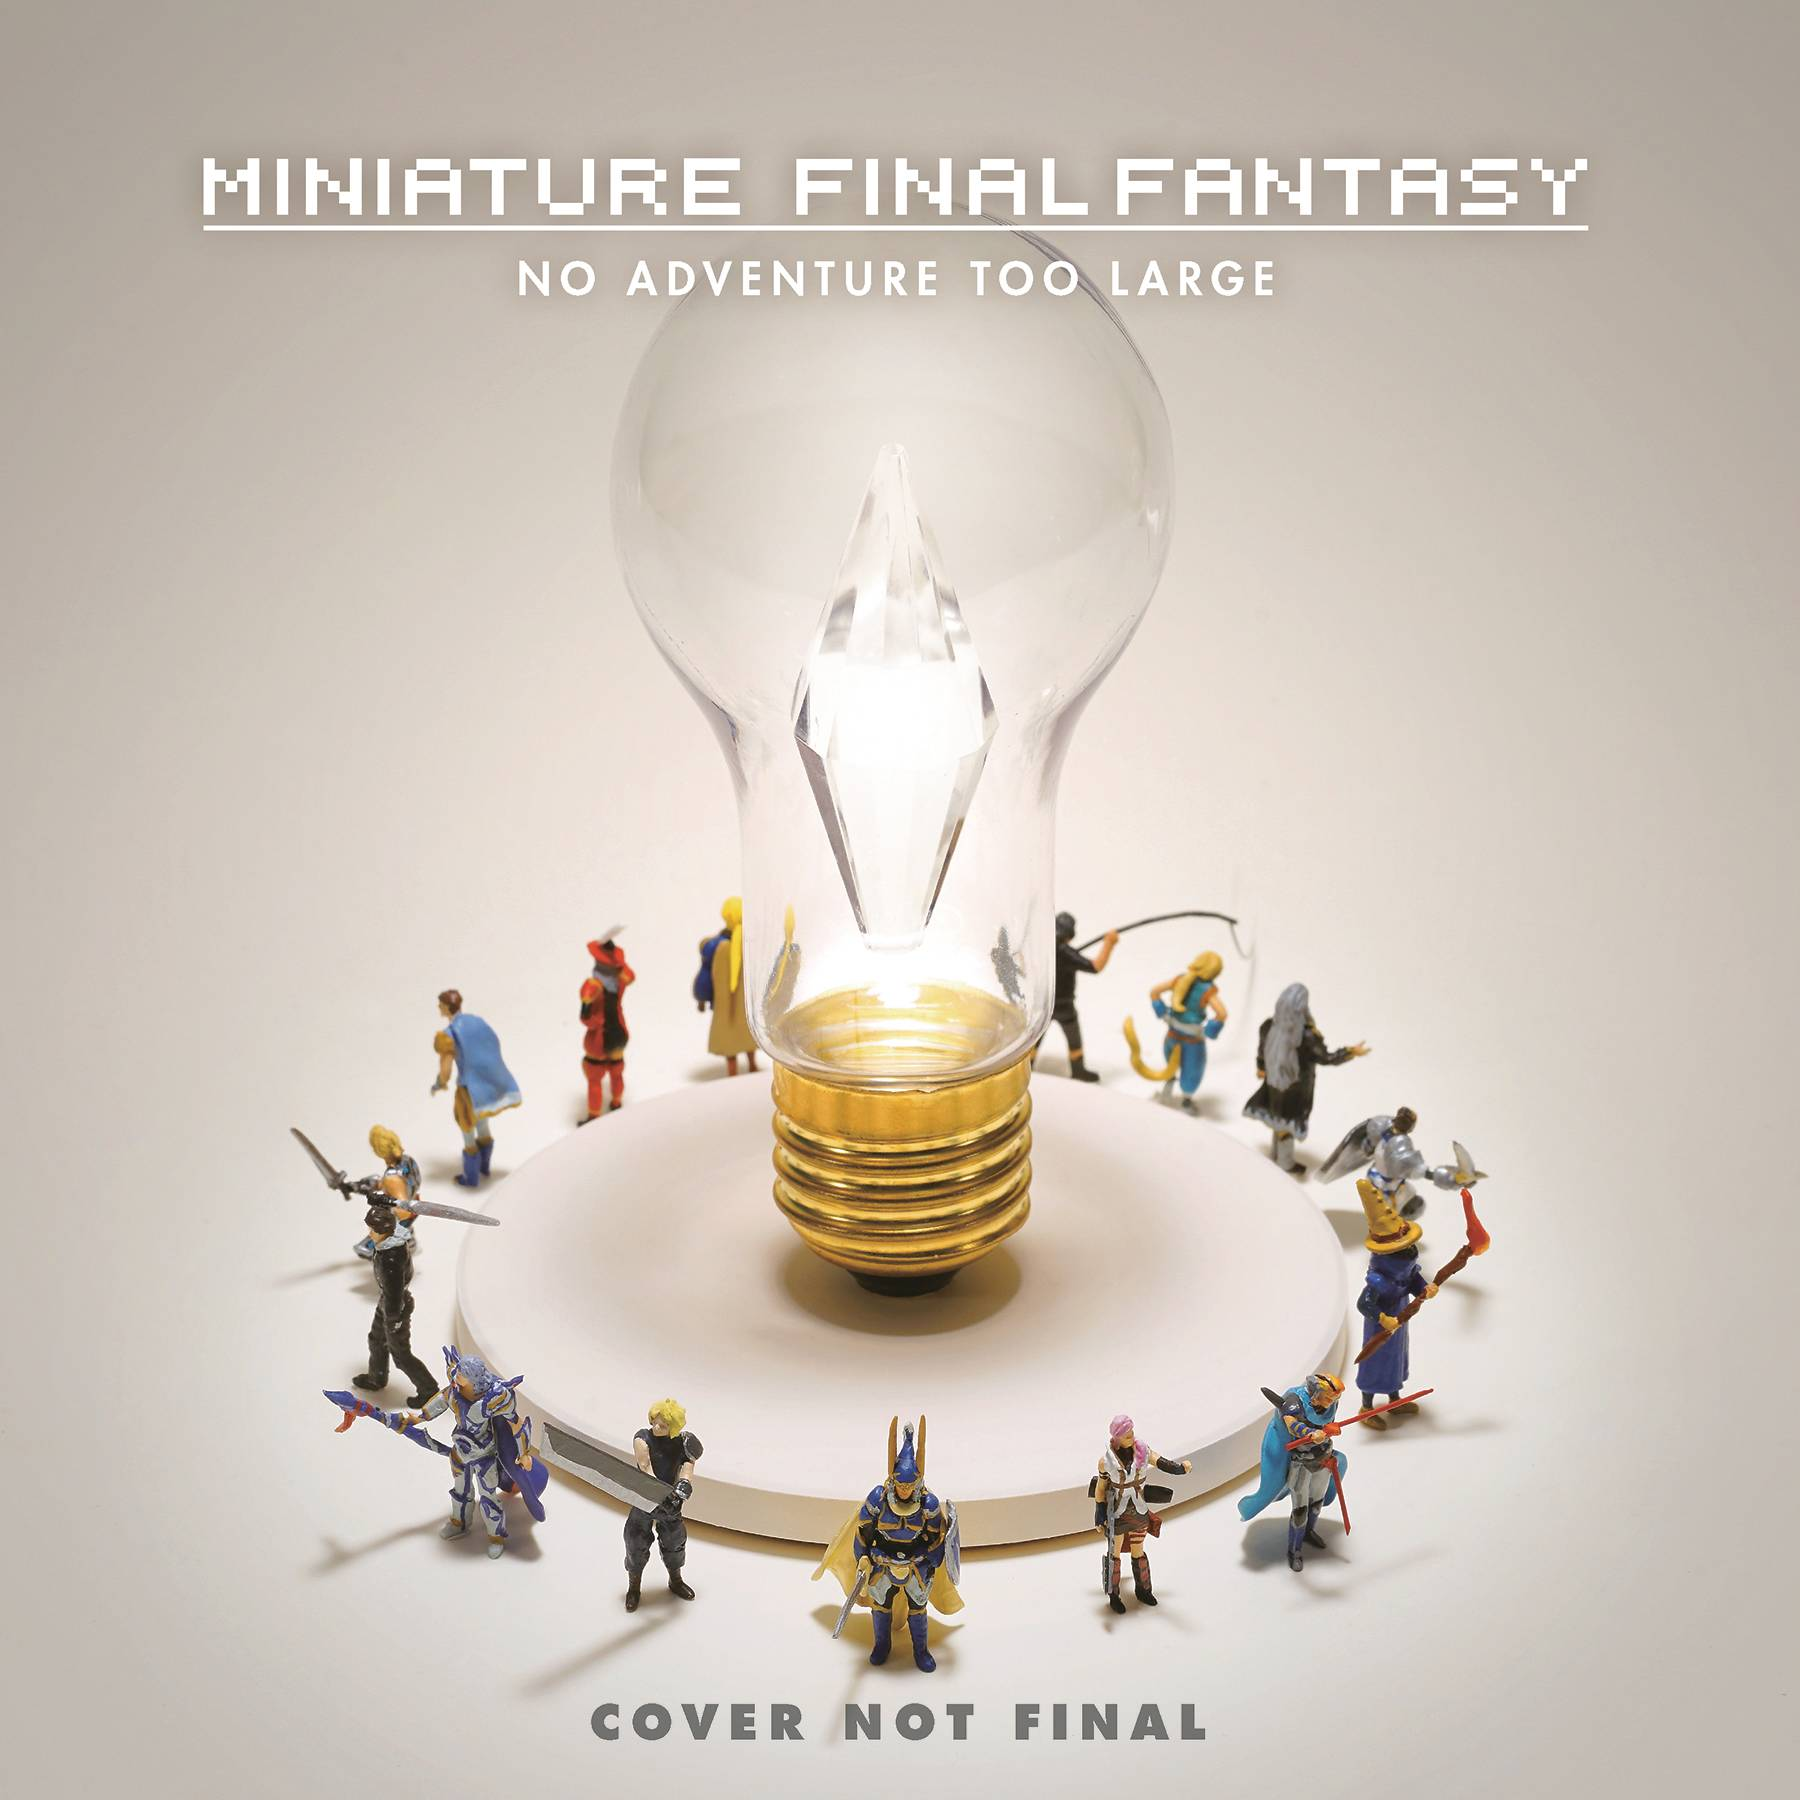 MINIATURE FINAL FANTASY NO ADVENTURE TOO LARGE HC.jpg